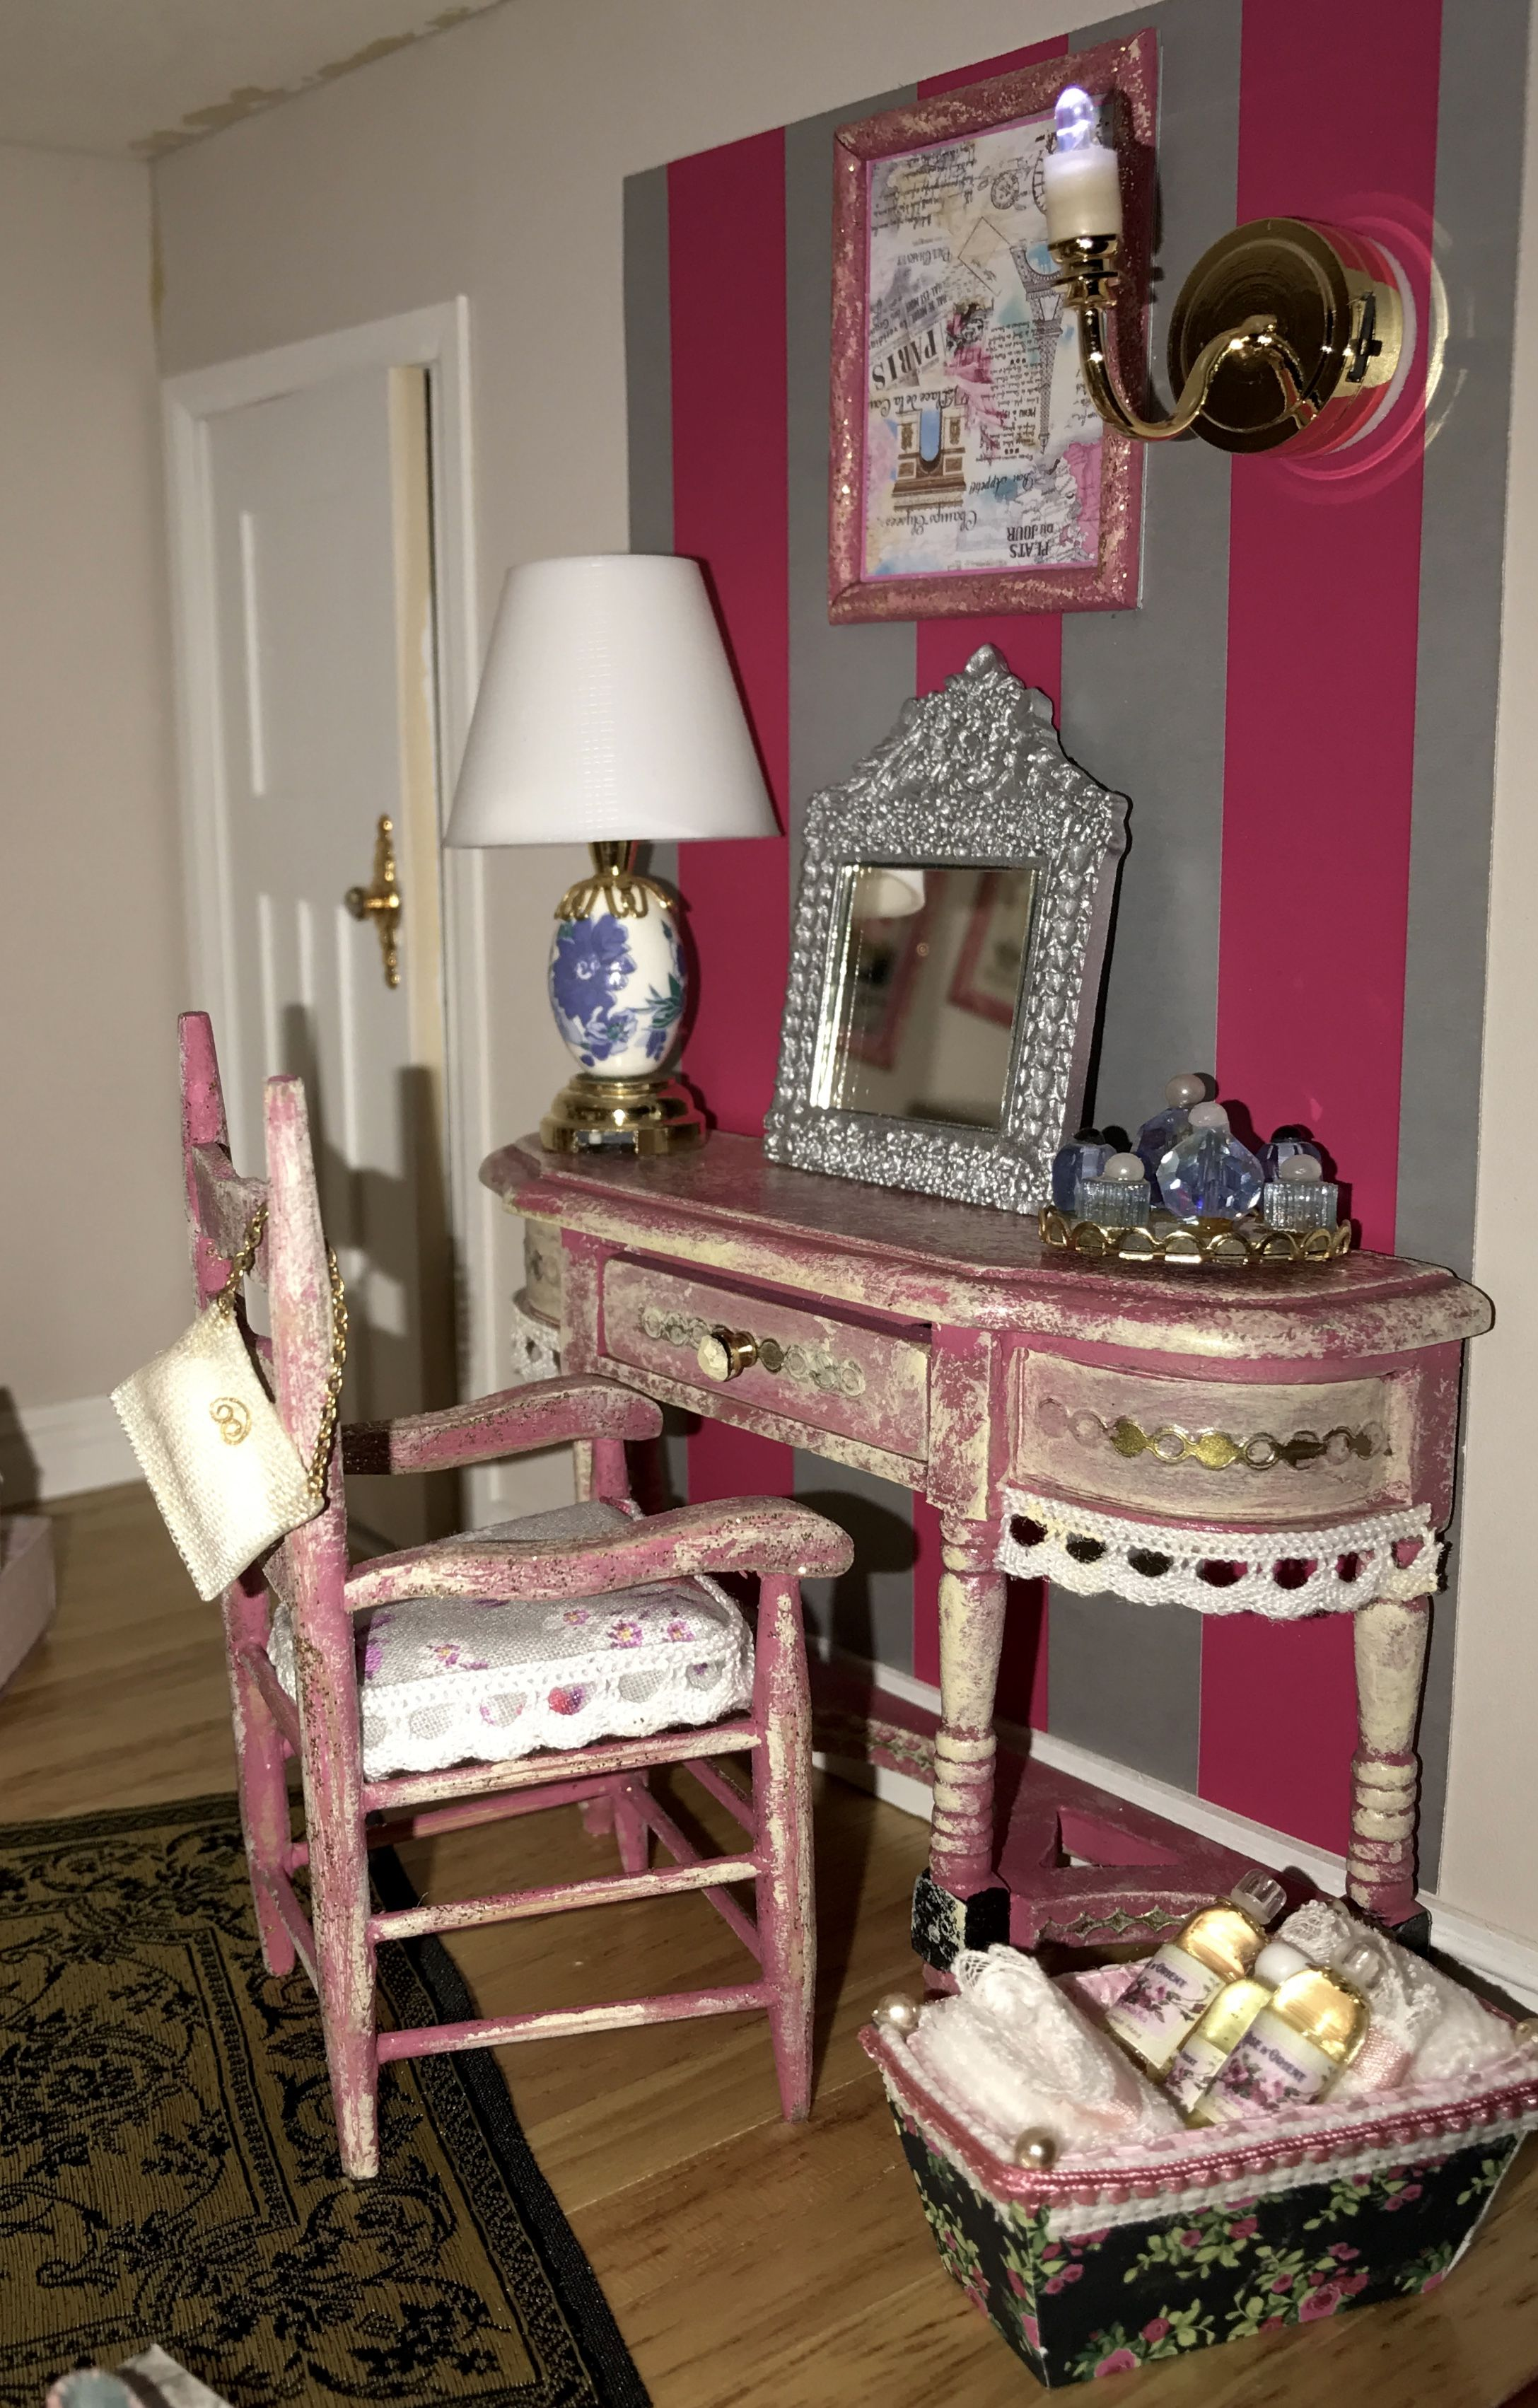 The right side of the bedroom shows a beautiful dressing table. The furniture has been bought naked and painted by Dany's DIY Minis, as well as the basket you see on the botton right of this pictures, and the soap bottles inside. Also the painting is a DIY item  by Dany's DIY Minis